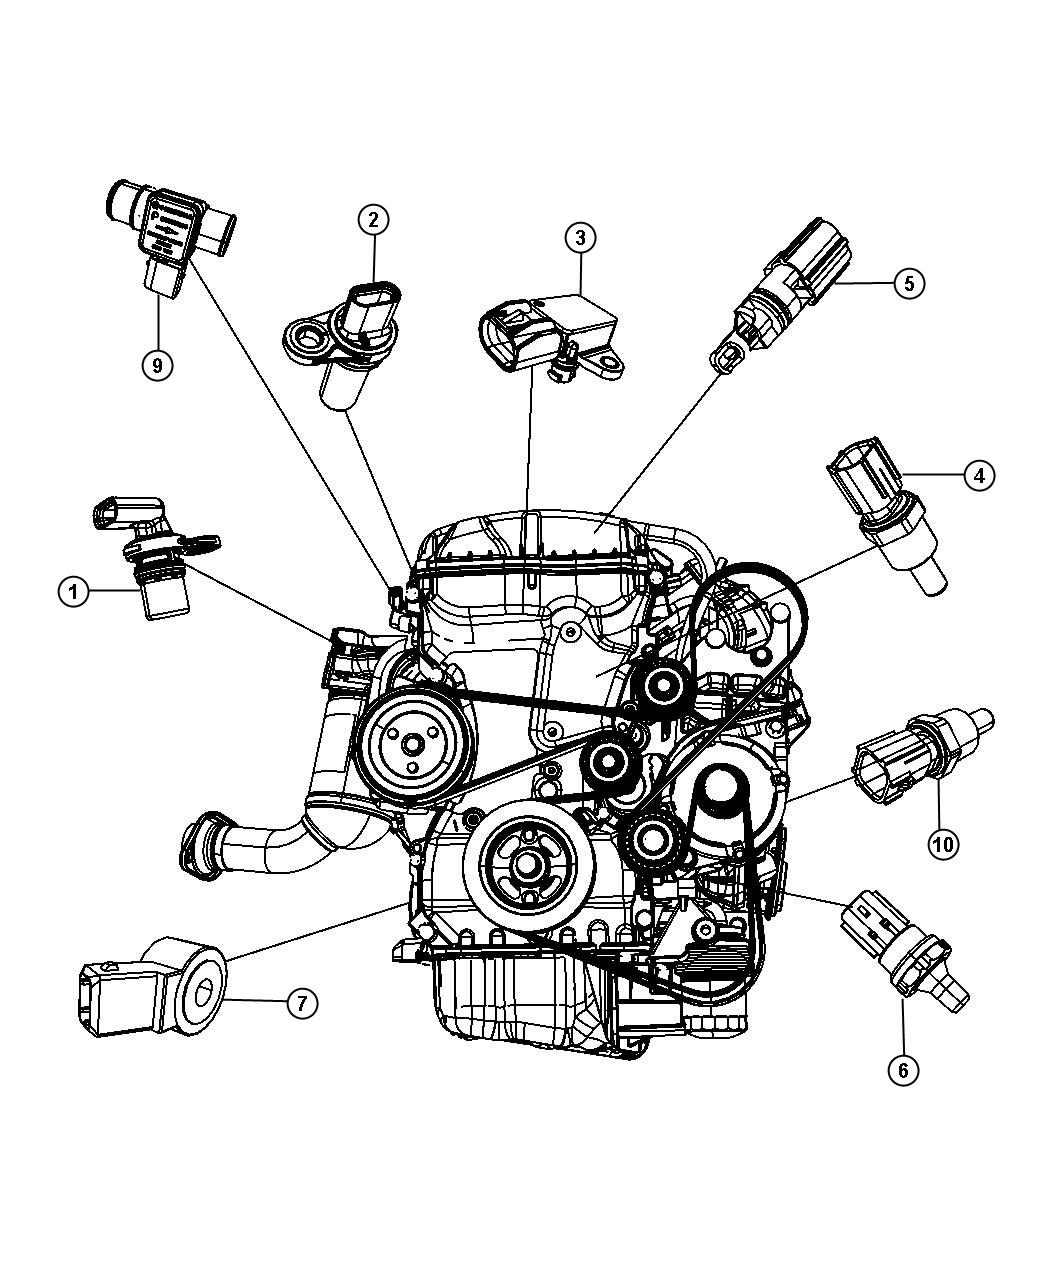 Chrysler Town And Country Engine Diagram Oil Filter in addition 1982 Corvette Engine Manual Diagram further Dodge Magnum Hemi Engine Diagram additionally Dodge Avenger 2 4 Litre Engine Diagram further Toyota 1MZFE Timing Belt Replacement Camry Avalon ES300. on 2006 chrysler 300 serpentine belt diagram